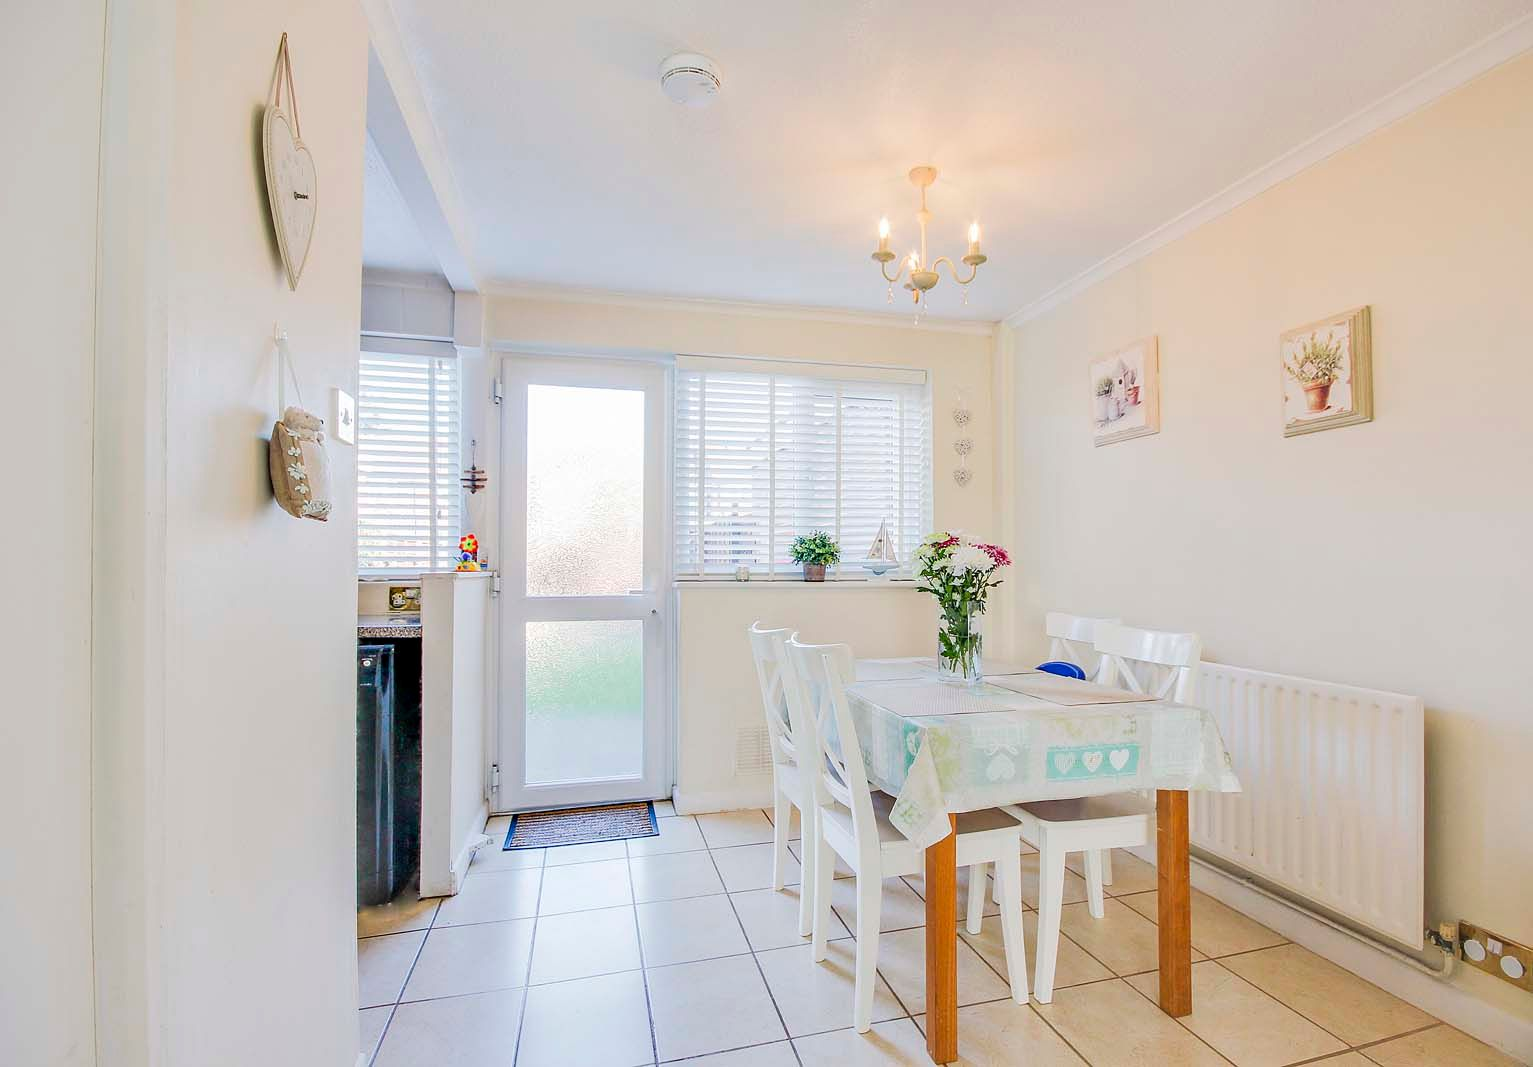 3 bed house for sale in Old Worthing Road  - Property Image 3